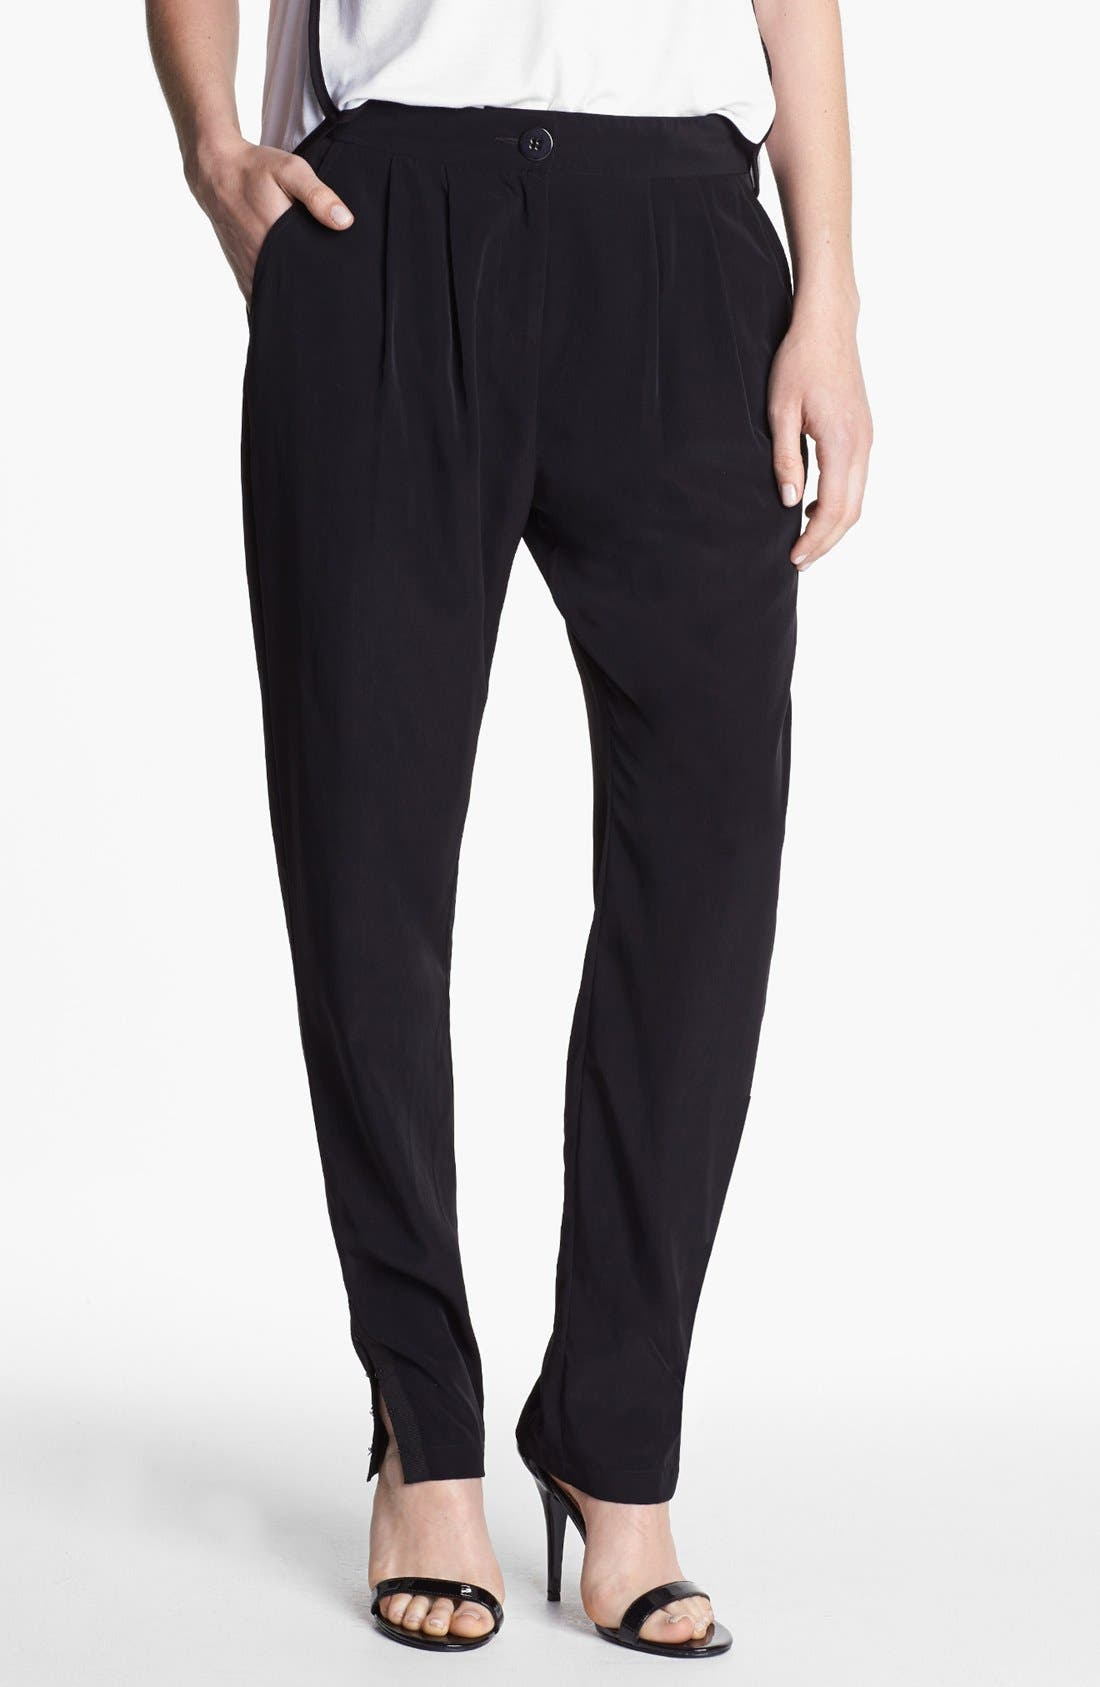 Alternate Image 1 Selected - Kenneth Cole New York 'Sharla' Pleat Pants